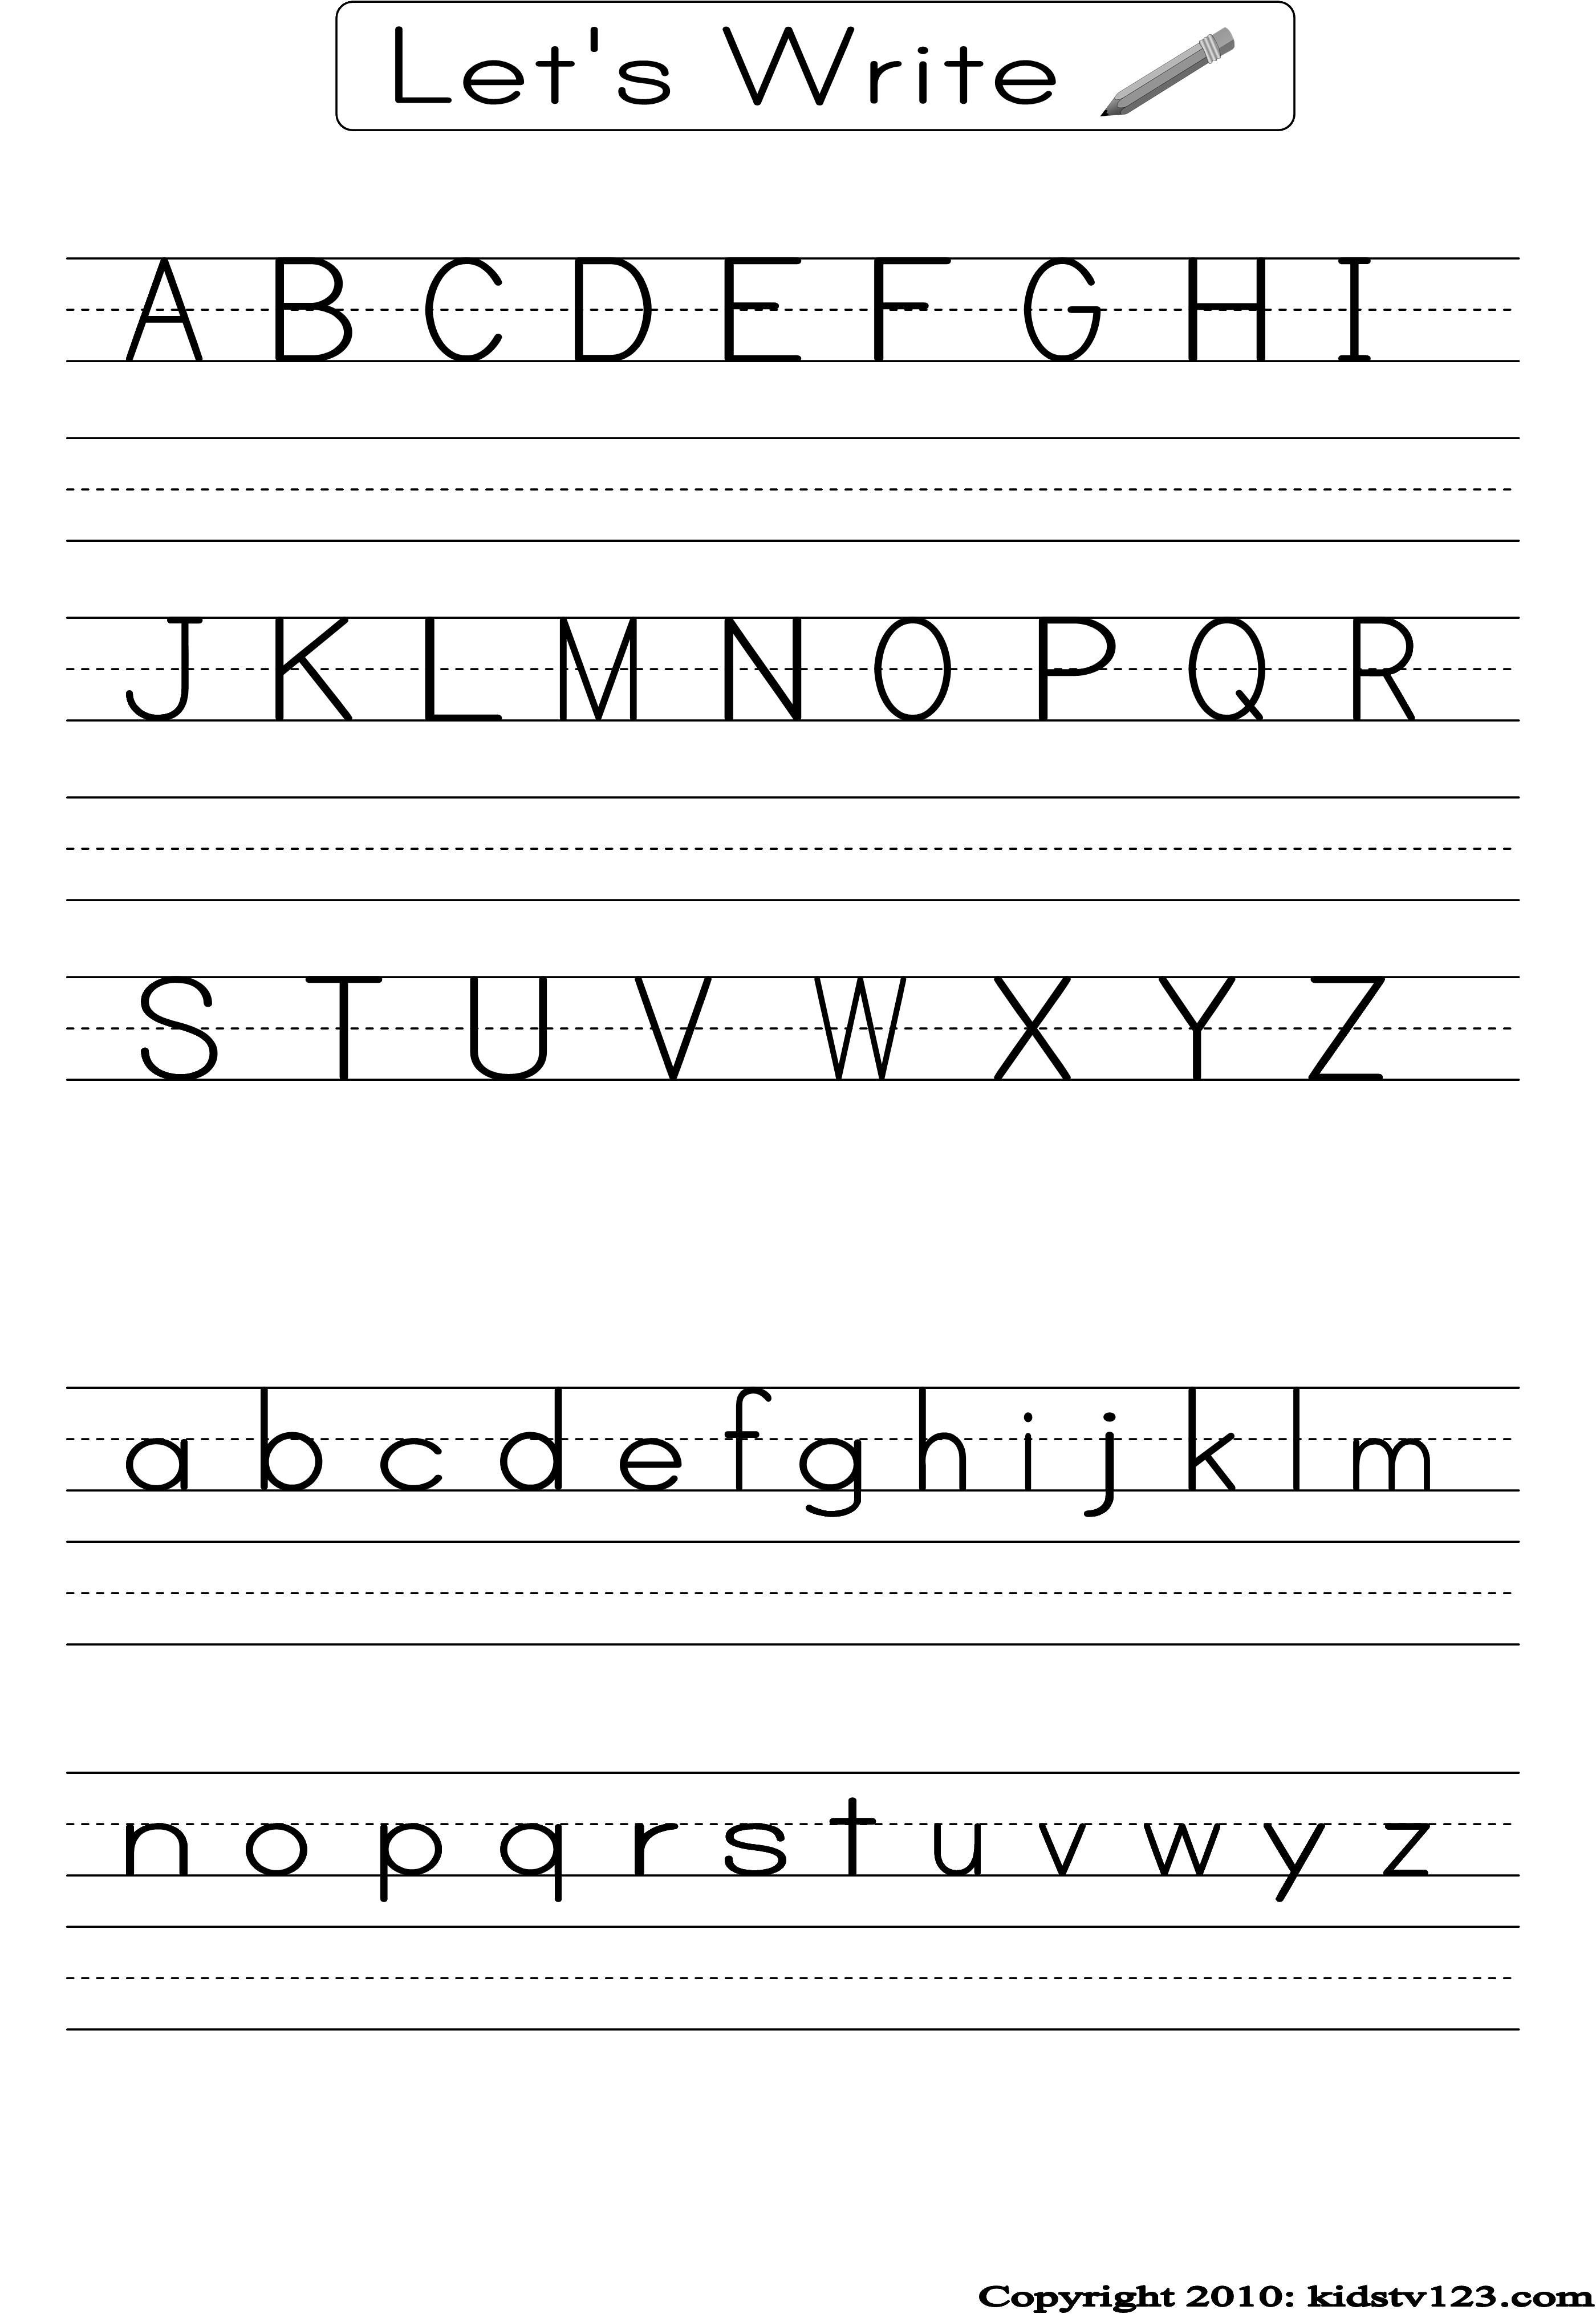 free printable alphabet worksheets preschool writing and pattern worksheets to print f doing. Black Bedroom Furniture Sets. Home Design Ideas